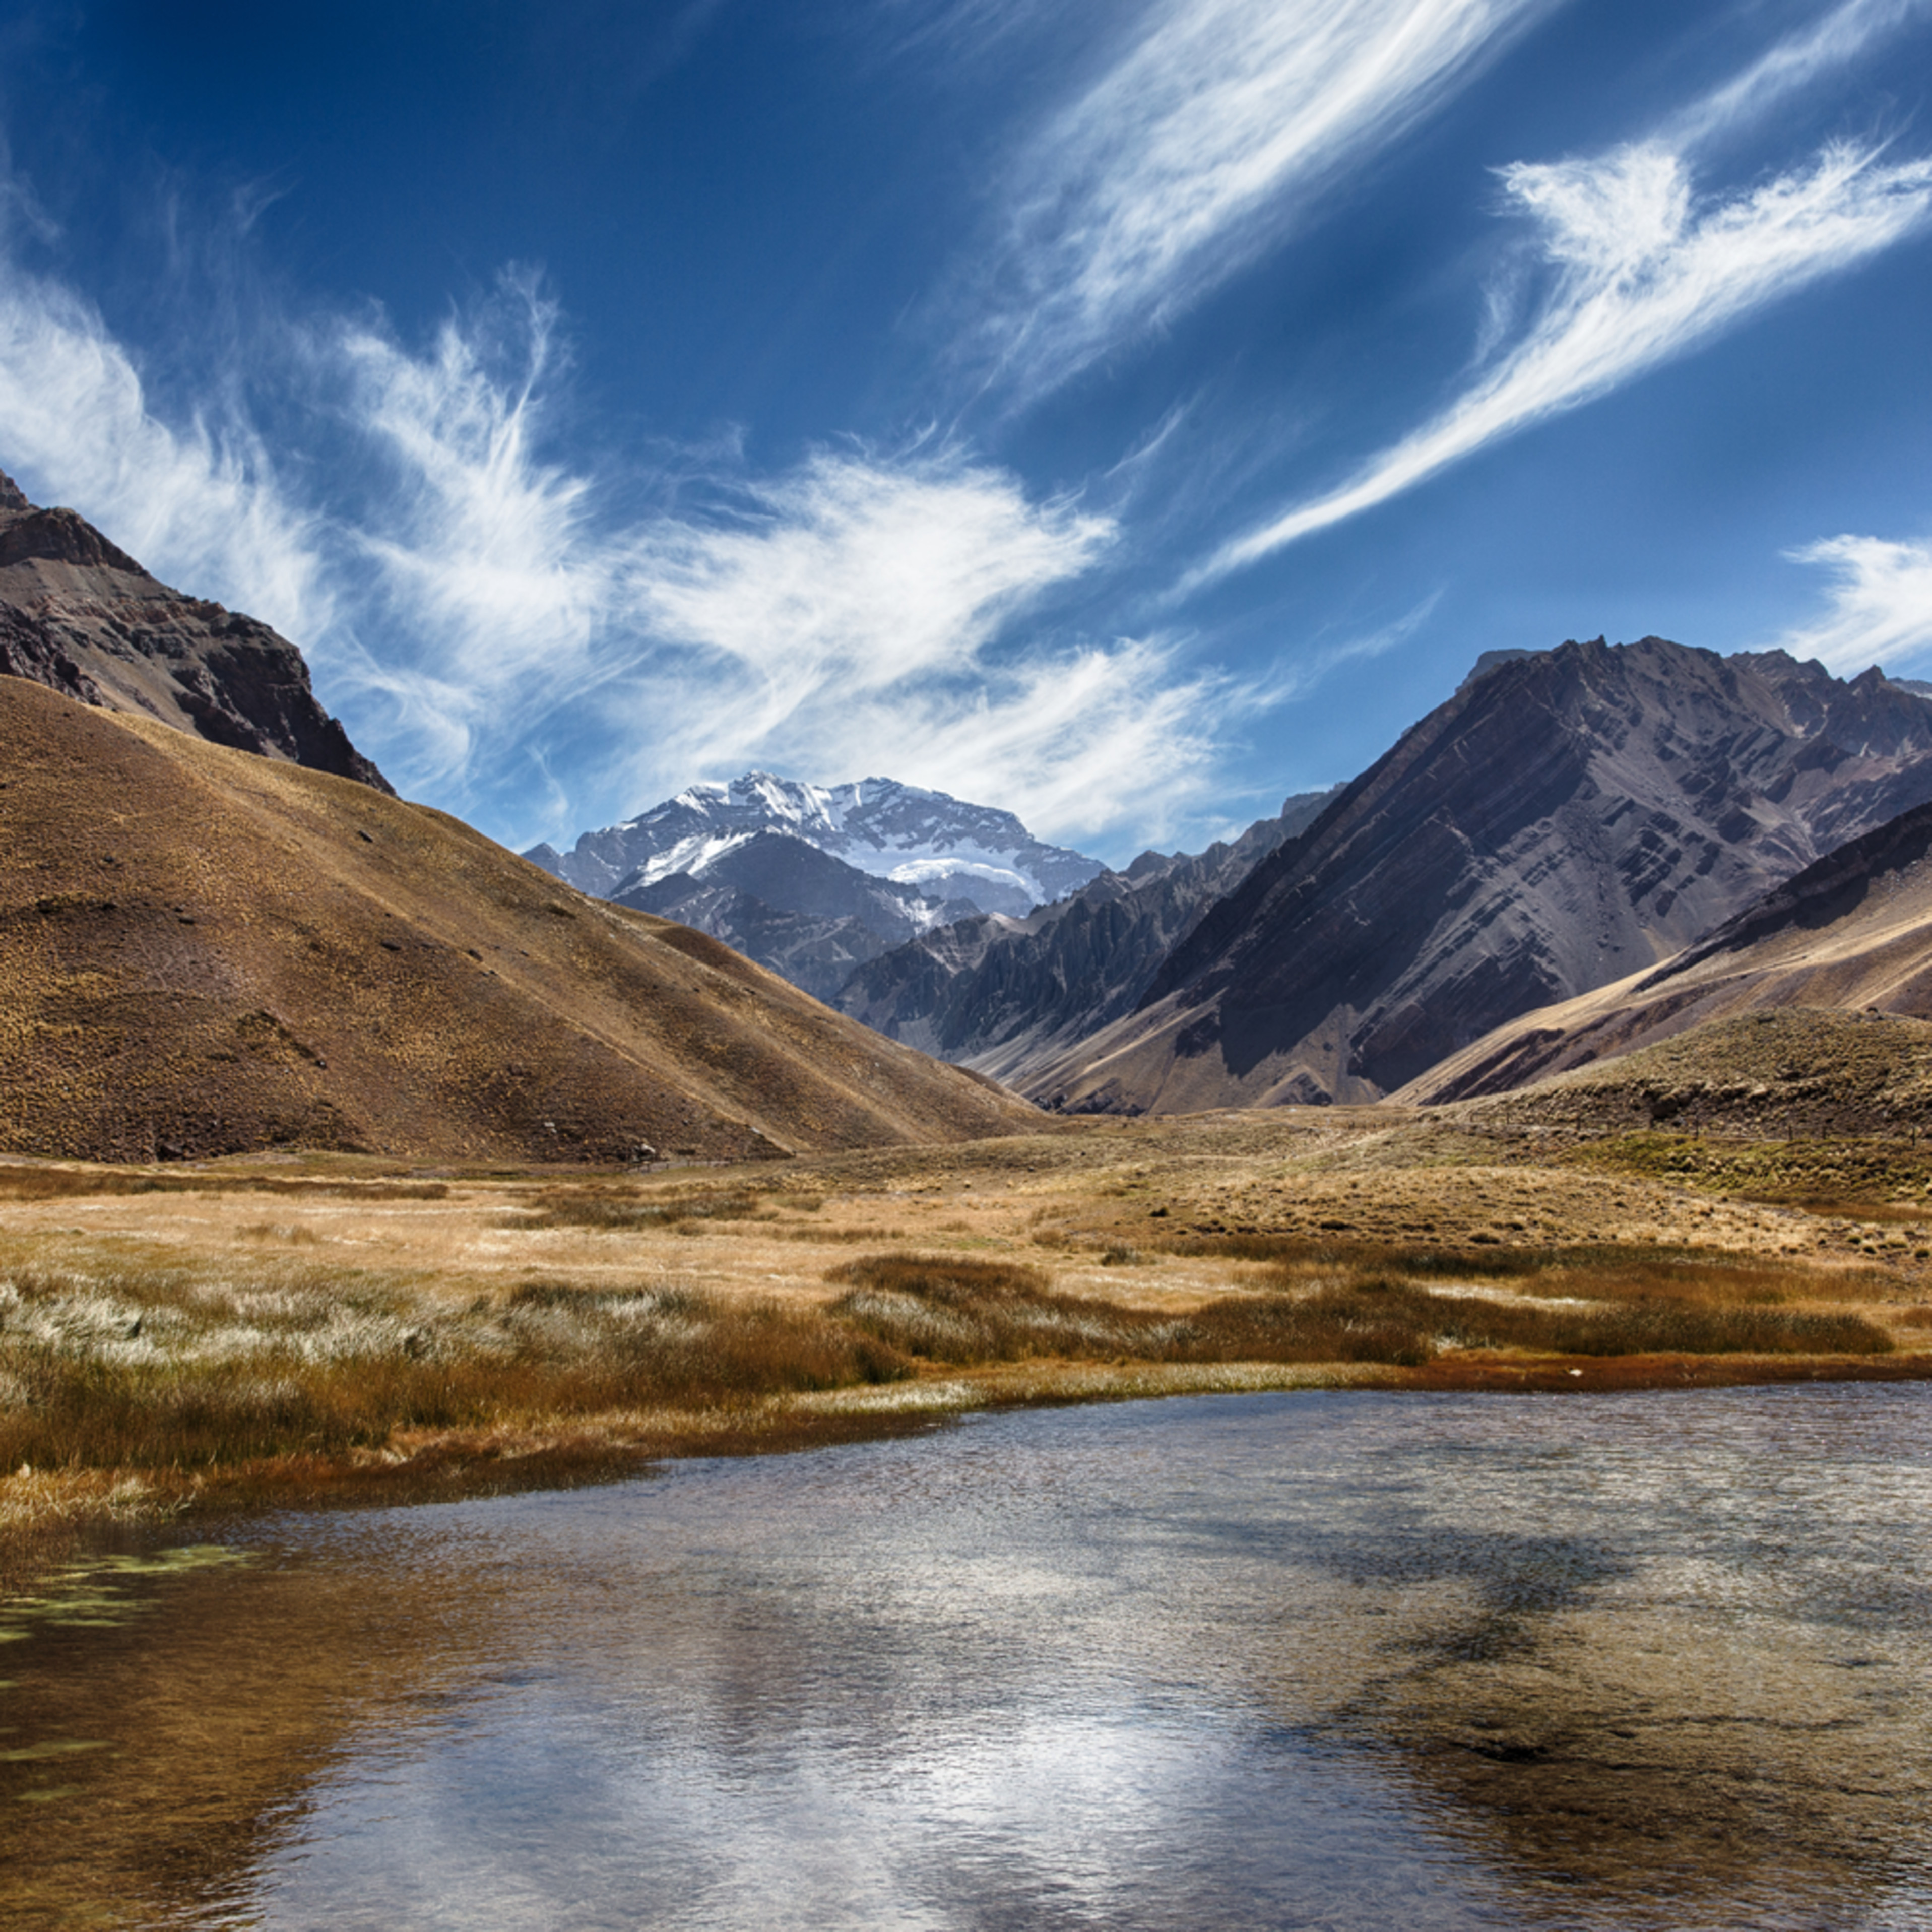 The approah to aconcagua in argentina f4jaap